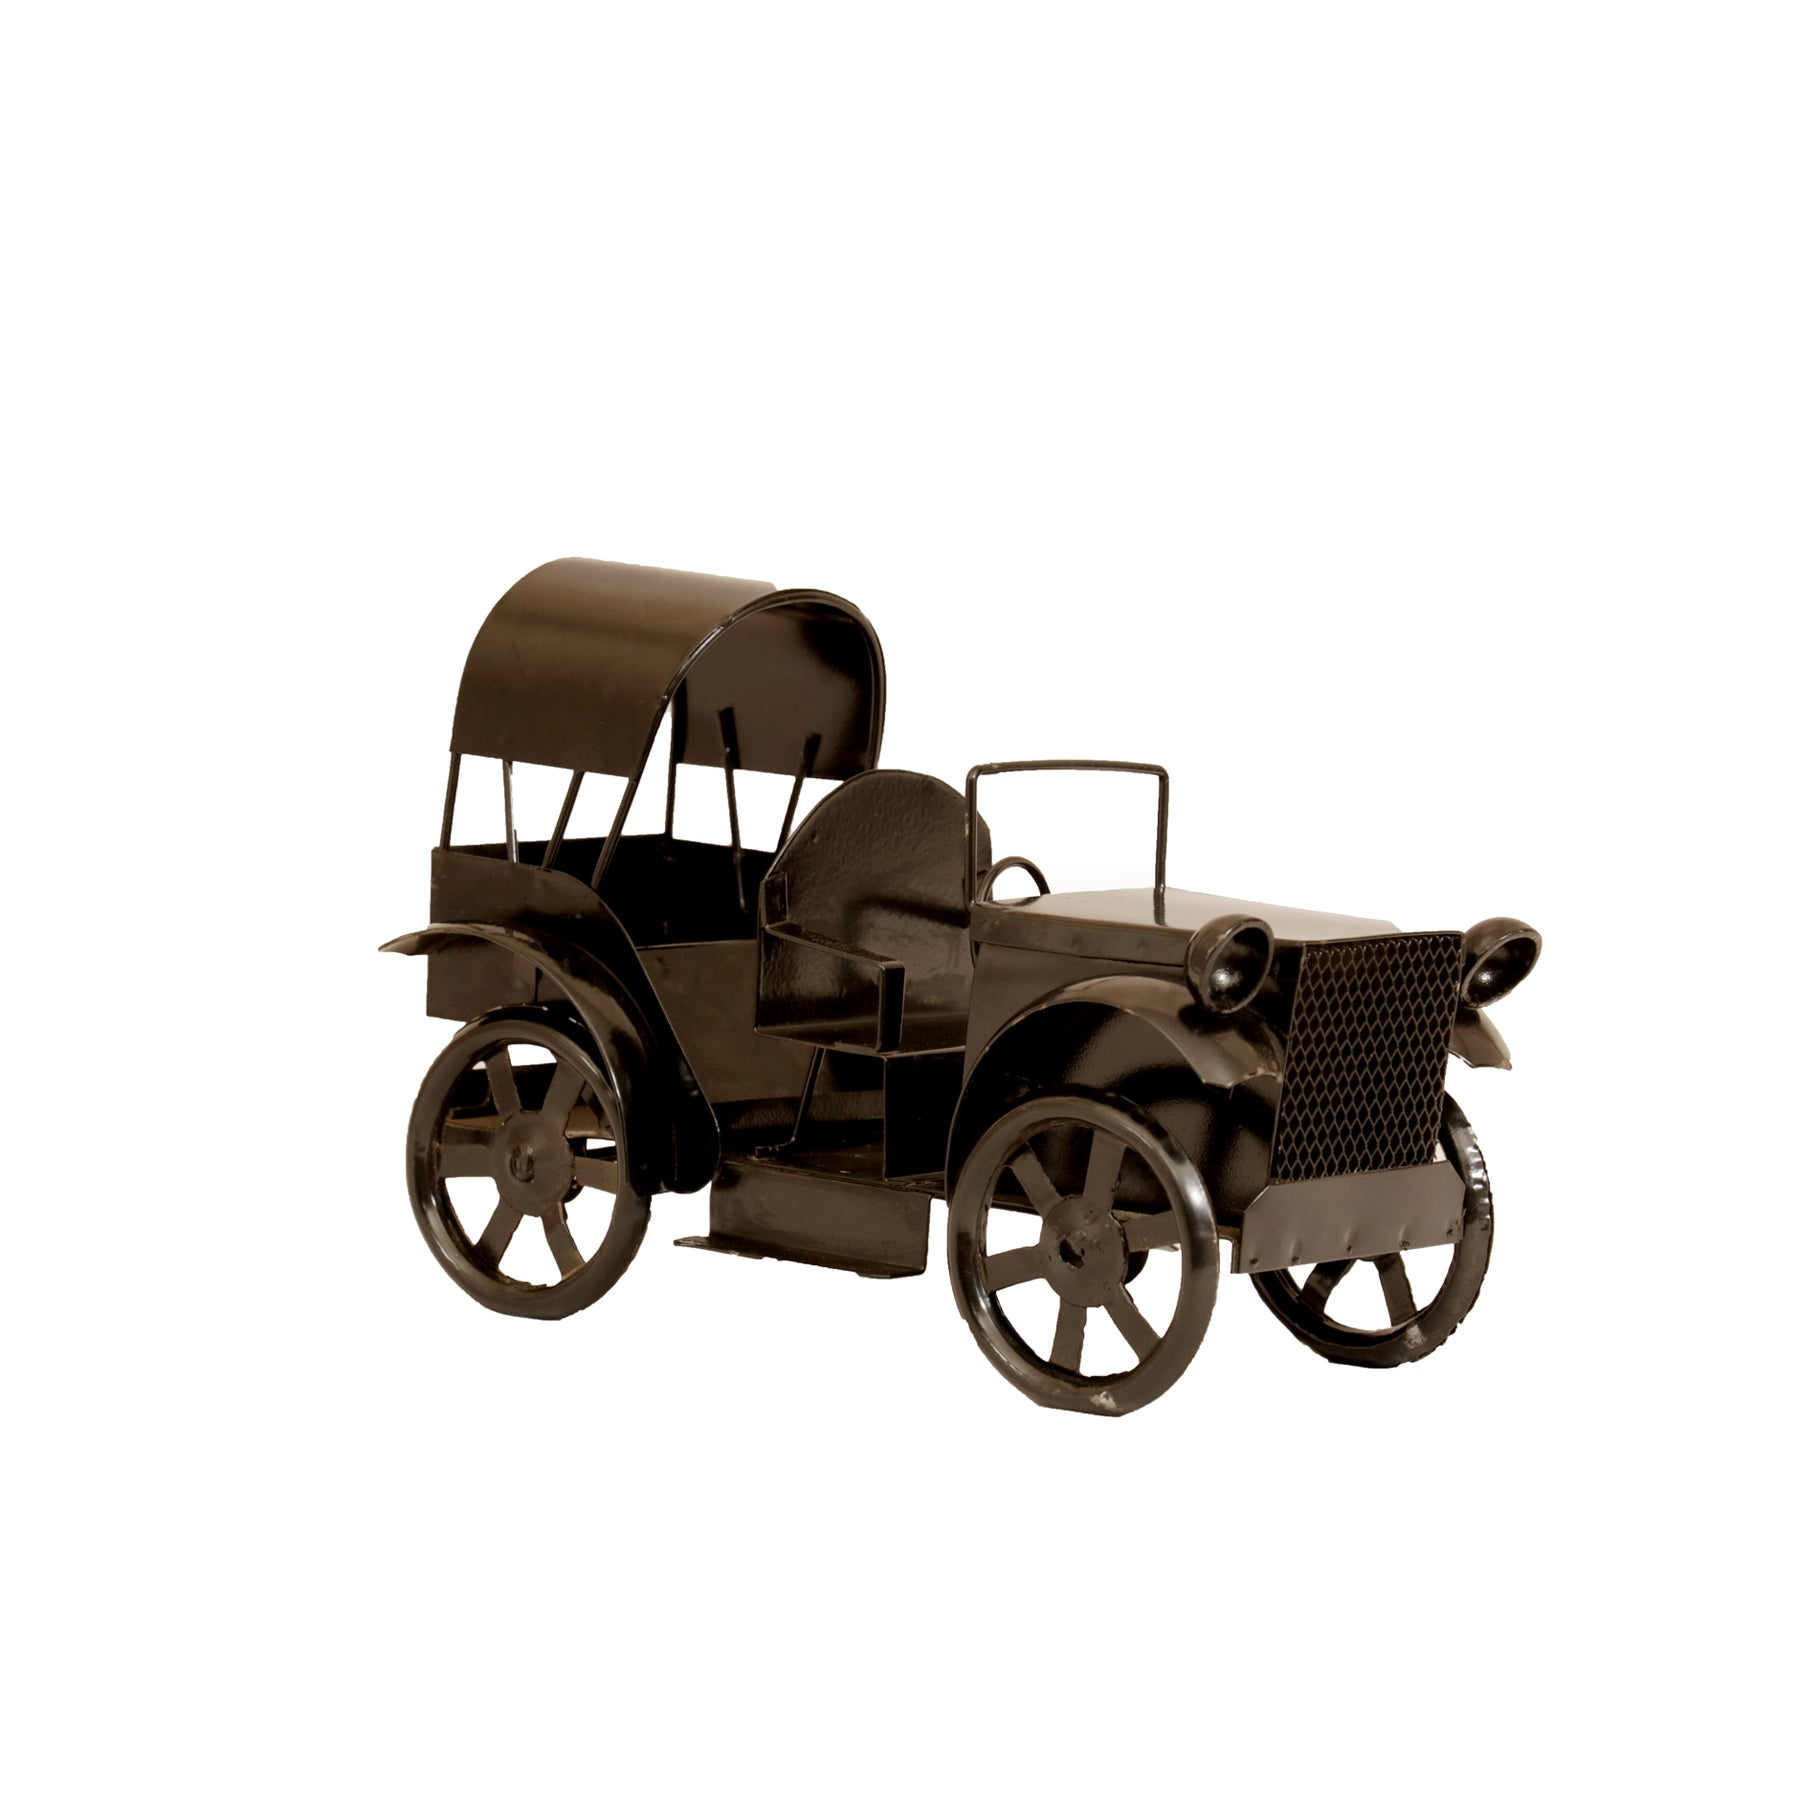 Veteris Metal Miniature Car